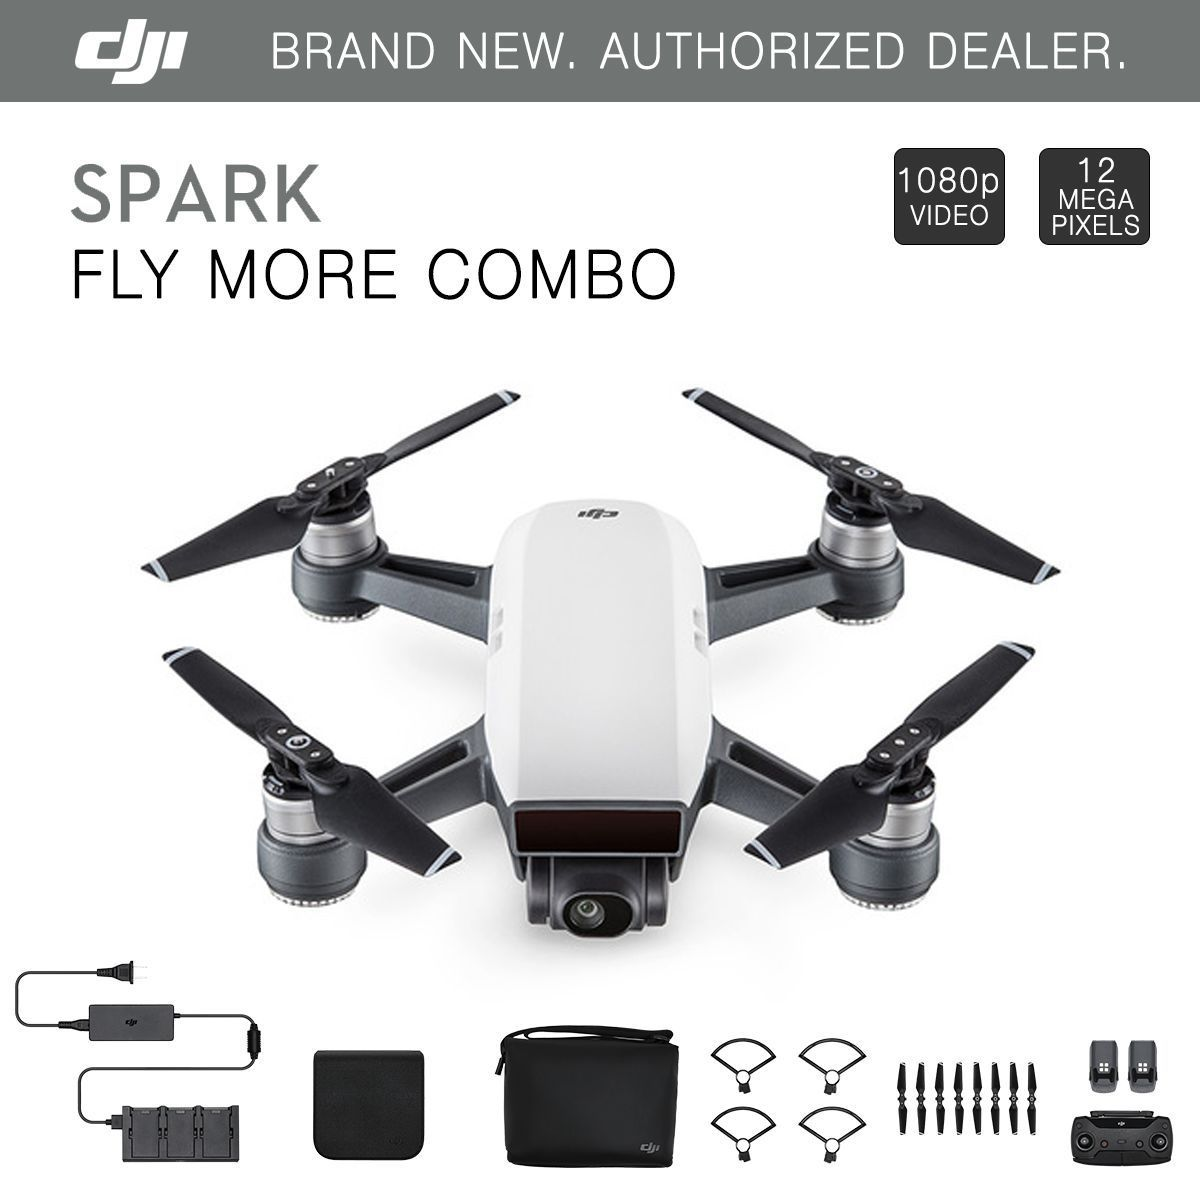 DJI Spark Fly More Combo - Alpine White Quadcopter Drone ...